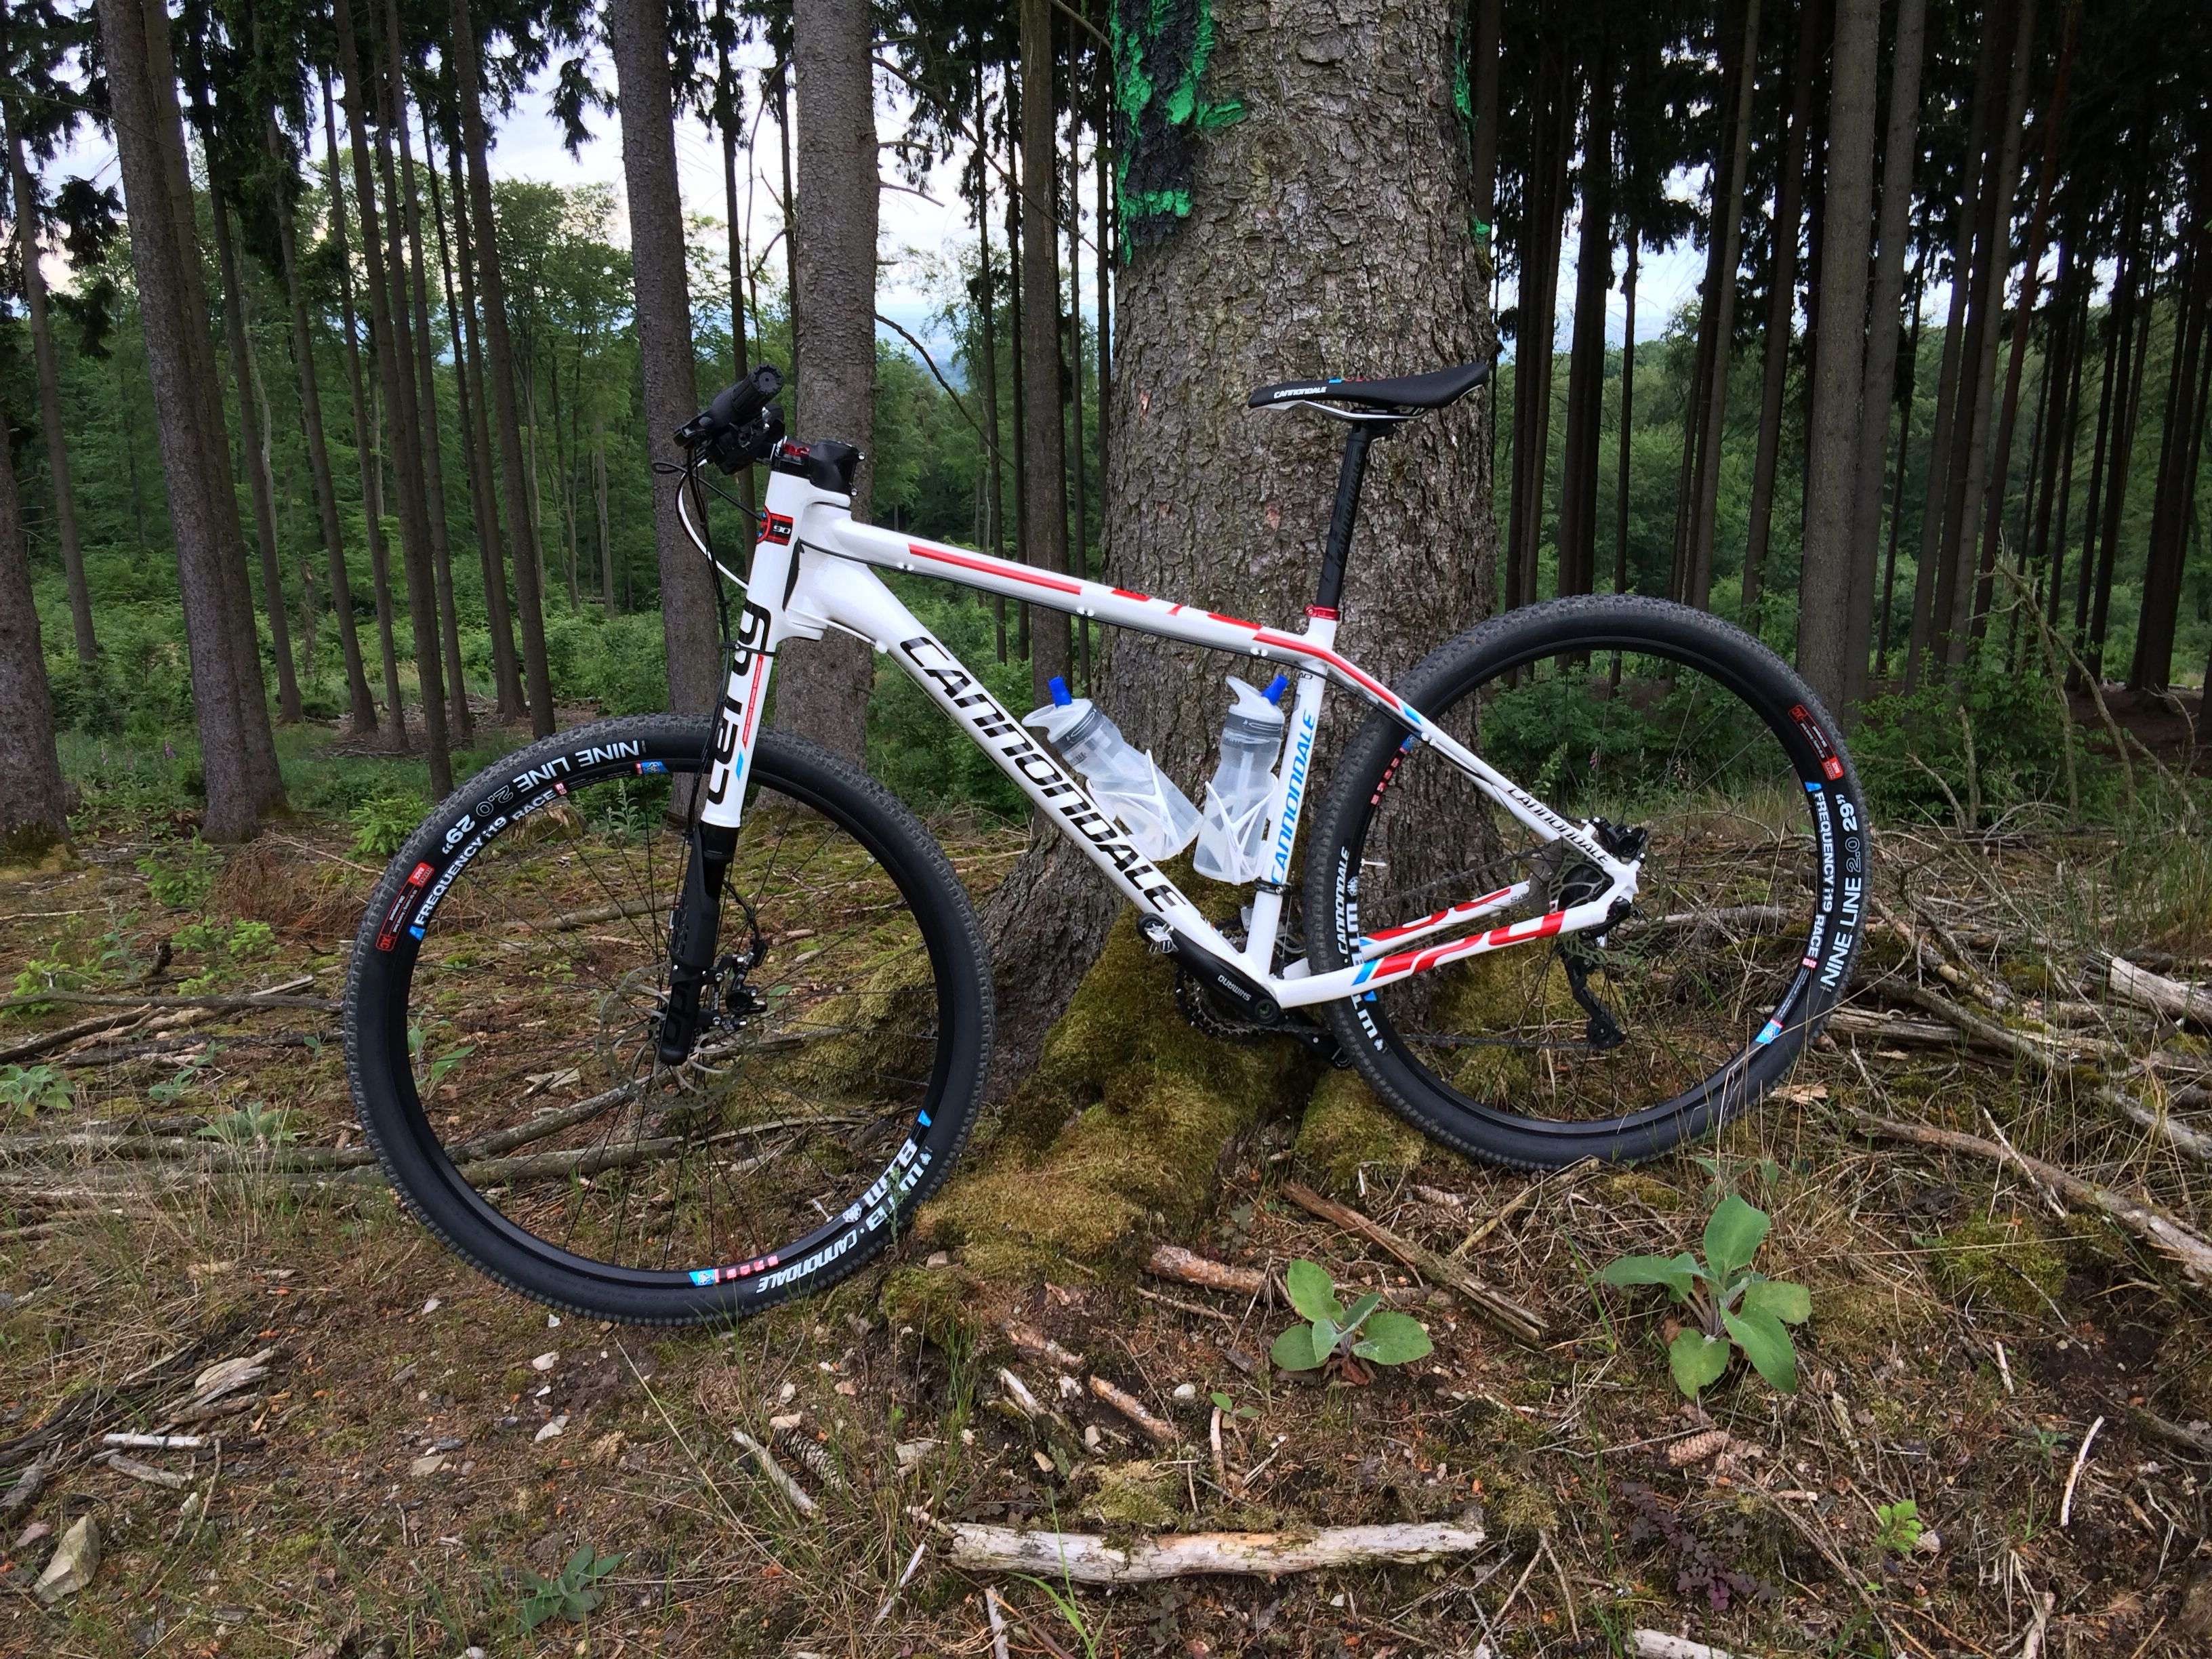 Cannondale Flash 29 Alloy F29 2 Pinterest Bicycle Element Mtb Fullsus Pride 20 Greey Red Bike Bicycles Cruiser